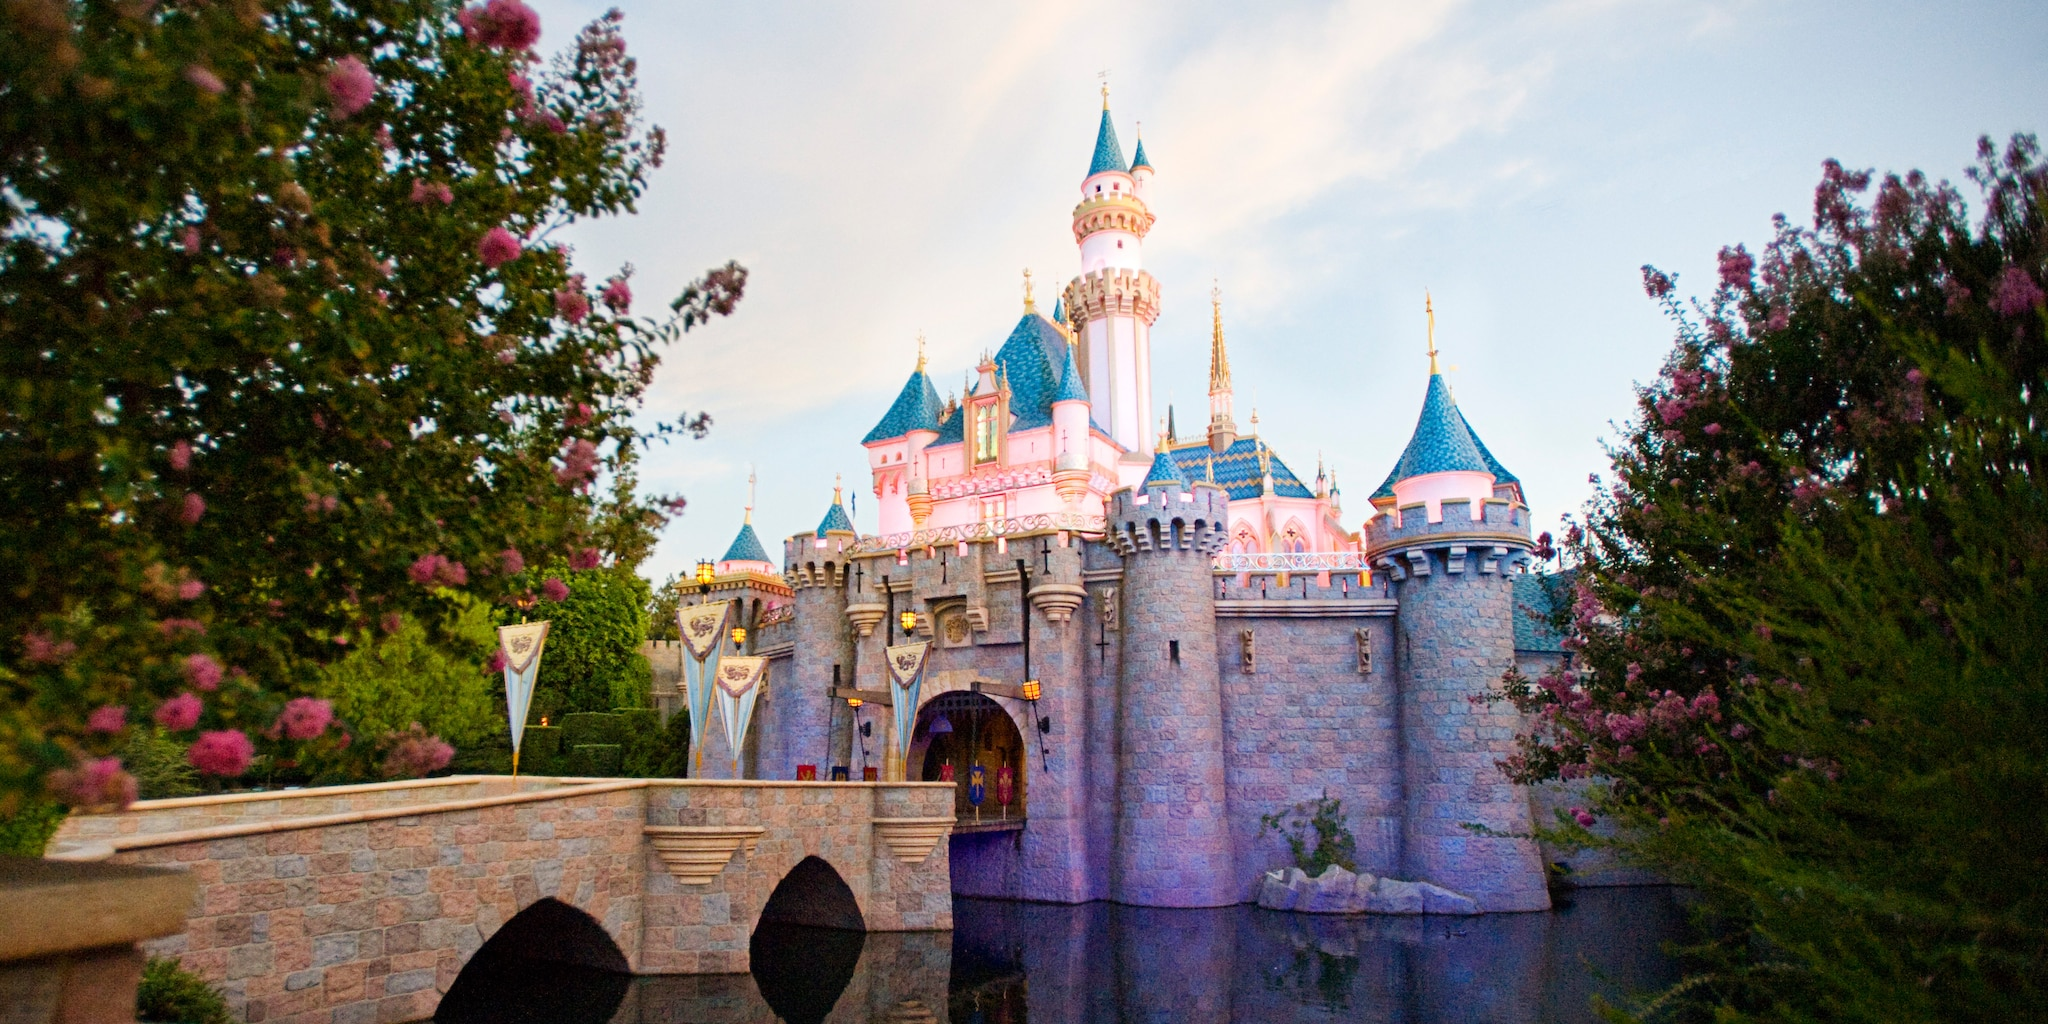 Sleeping Beauty Castle at Disneyland Park